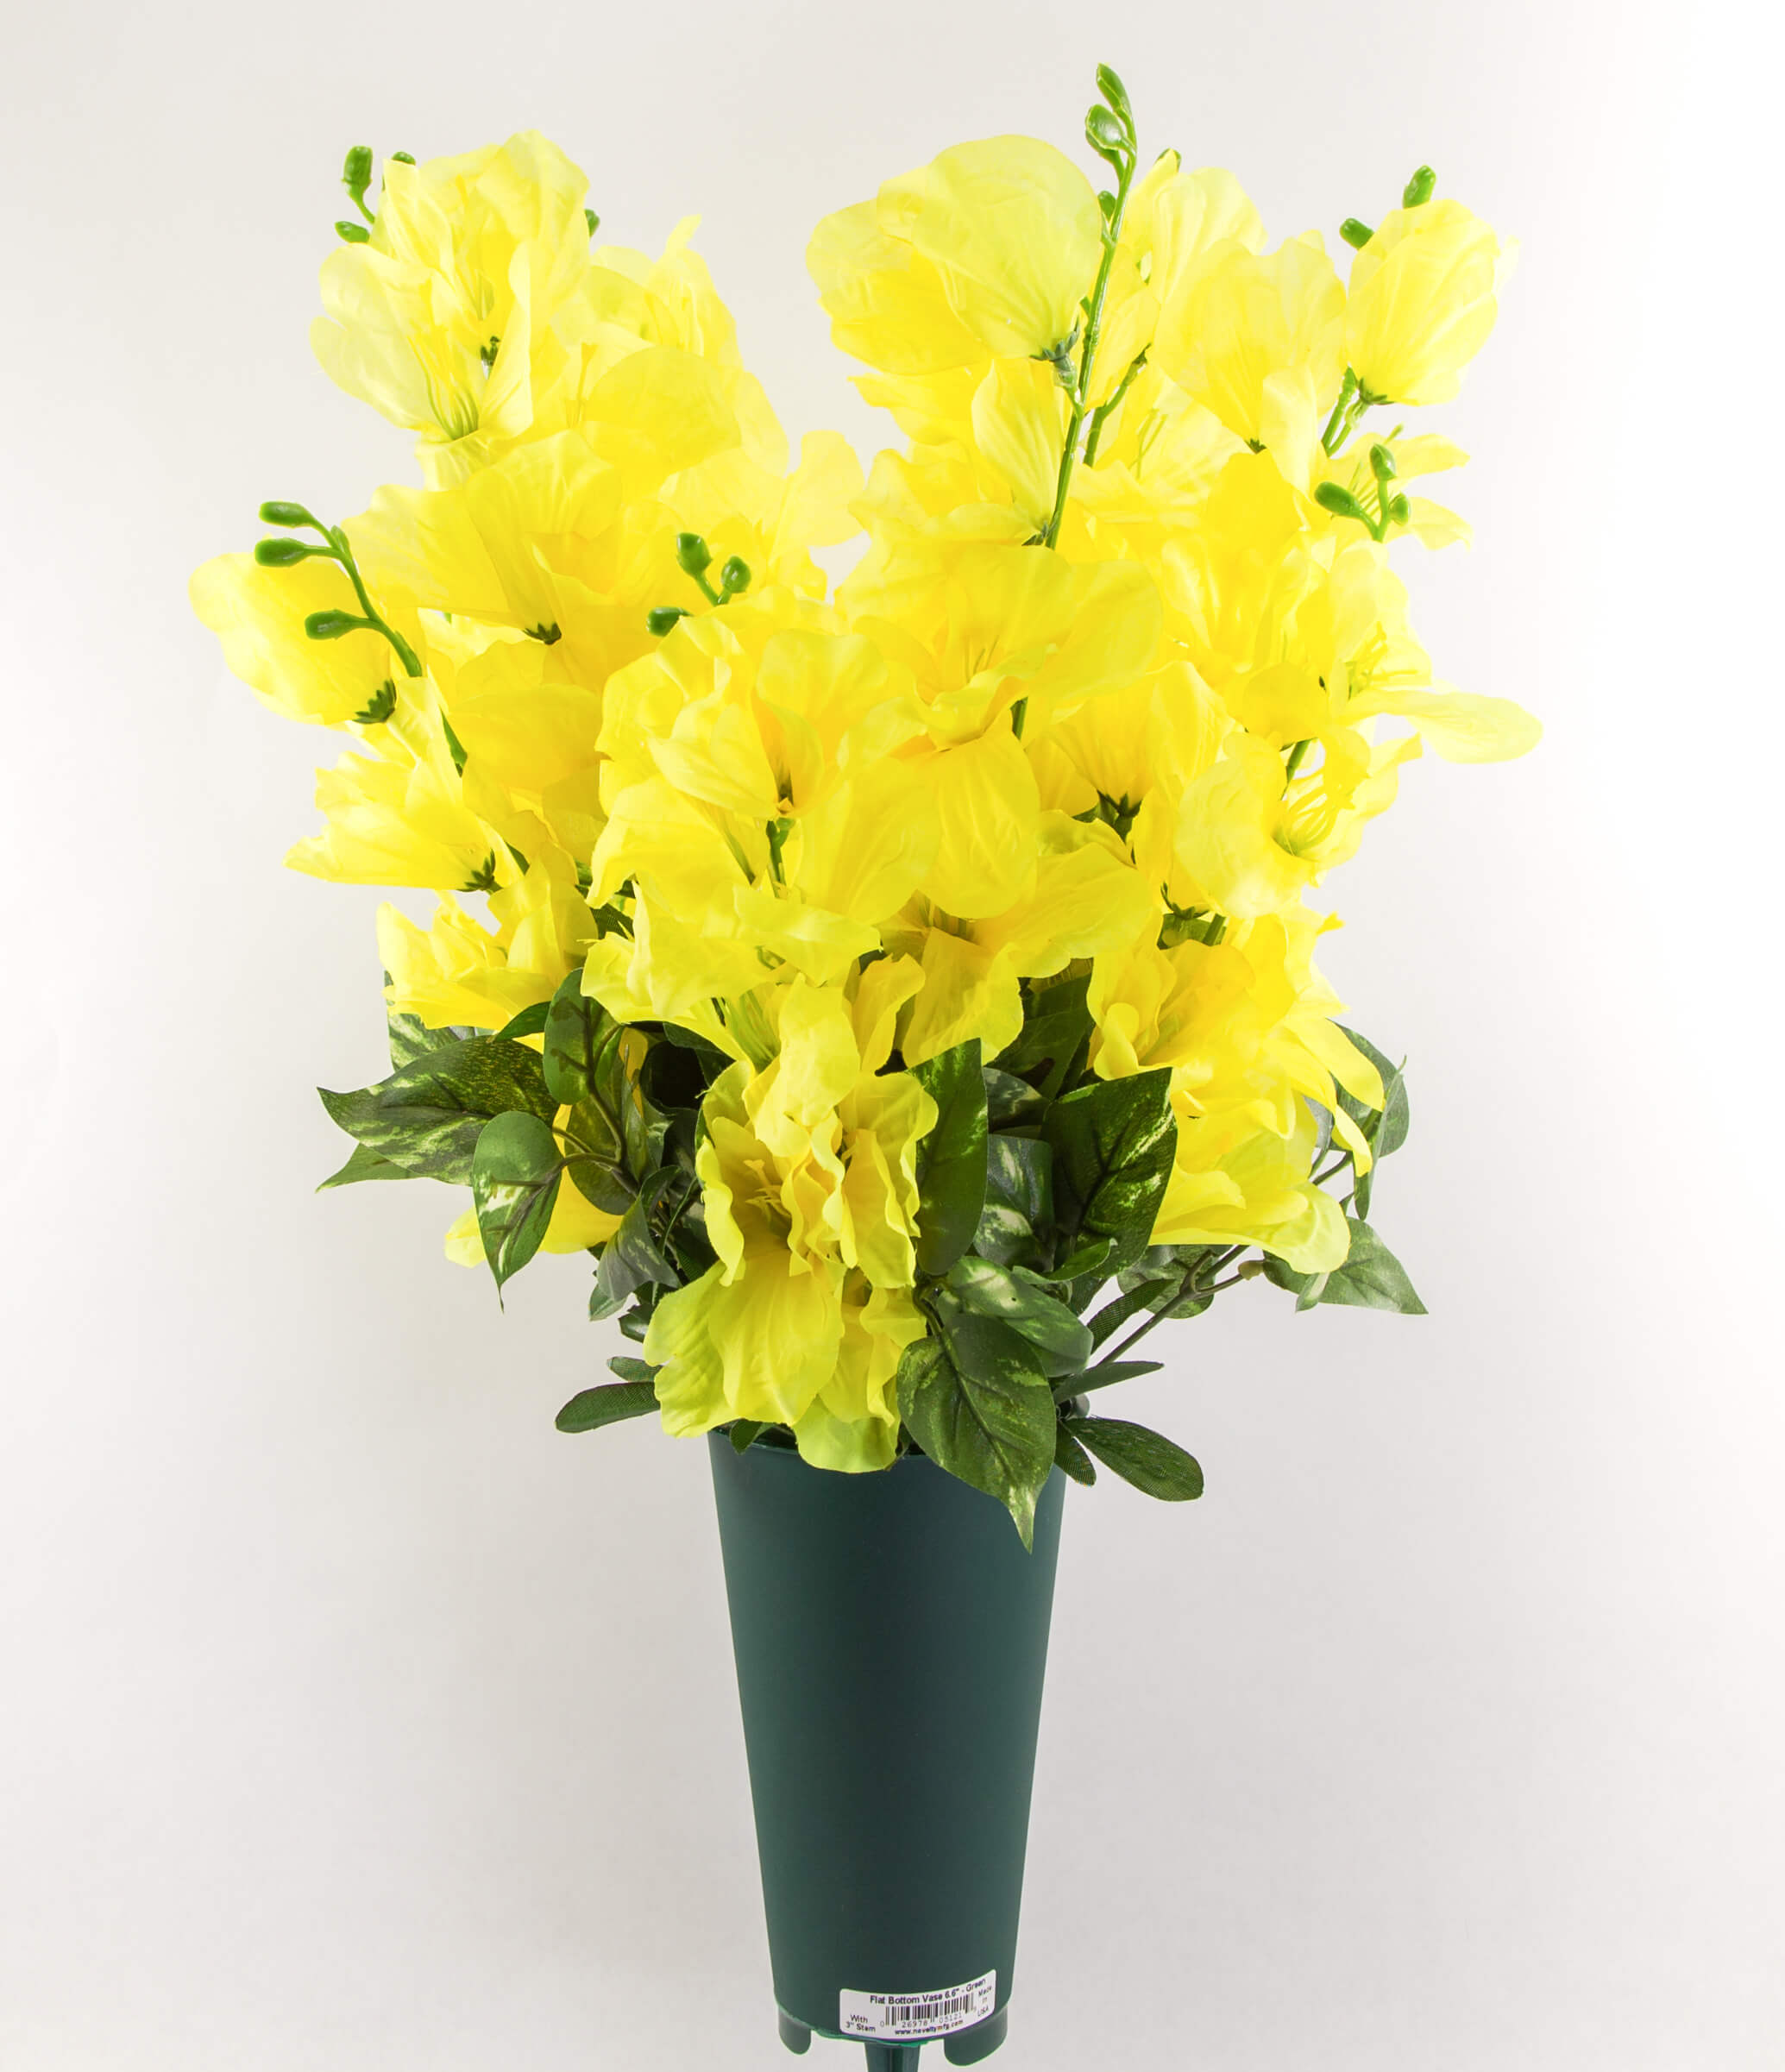 memorial r products flower of cemetery s vases vase decorations